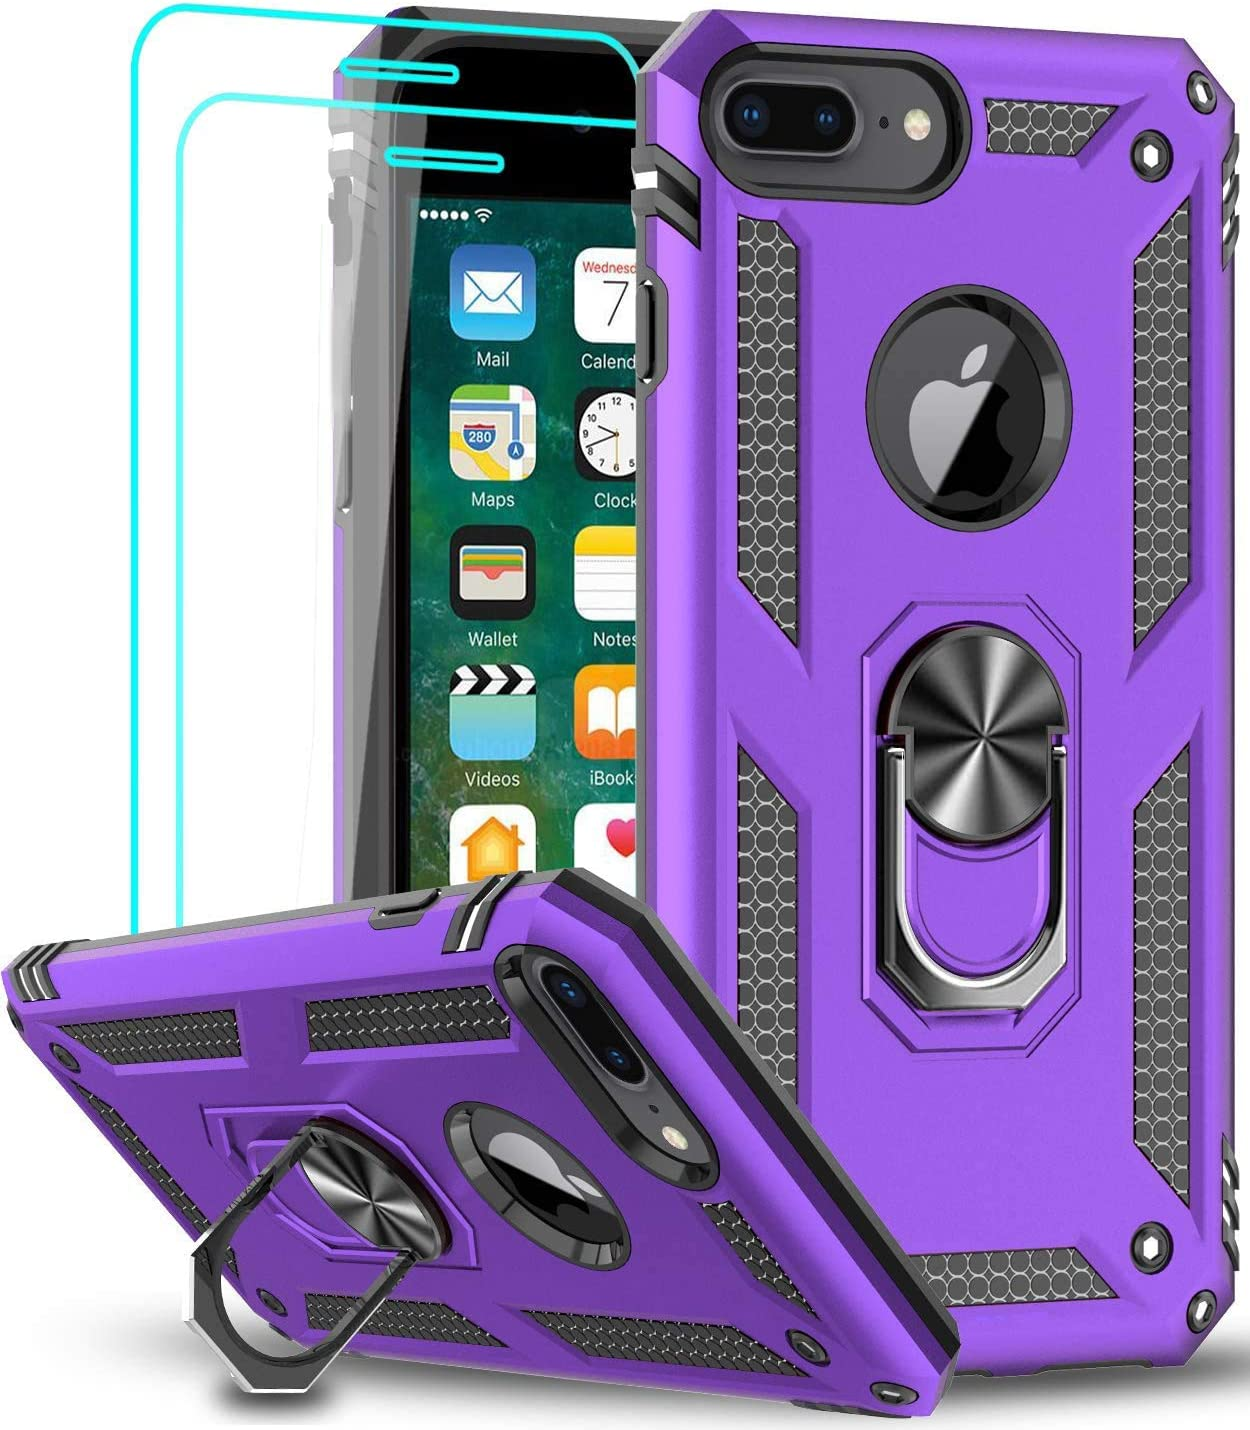 iPhone 8 Plus Case, iPhone 7 Plus Case, iPhone 6 Plus Case with Tempered Glass Screen Protector [2Pack], LeYi Military Grade Phone Case with Rotating Holder Kickstand for iPhone 6s Plus, Purple